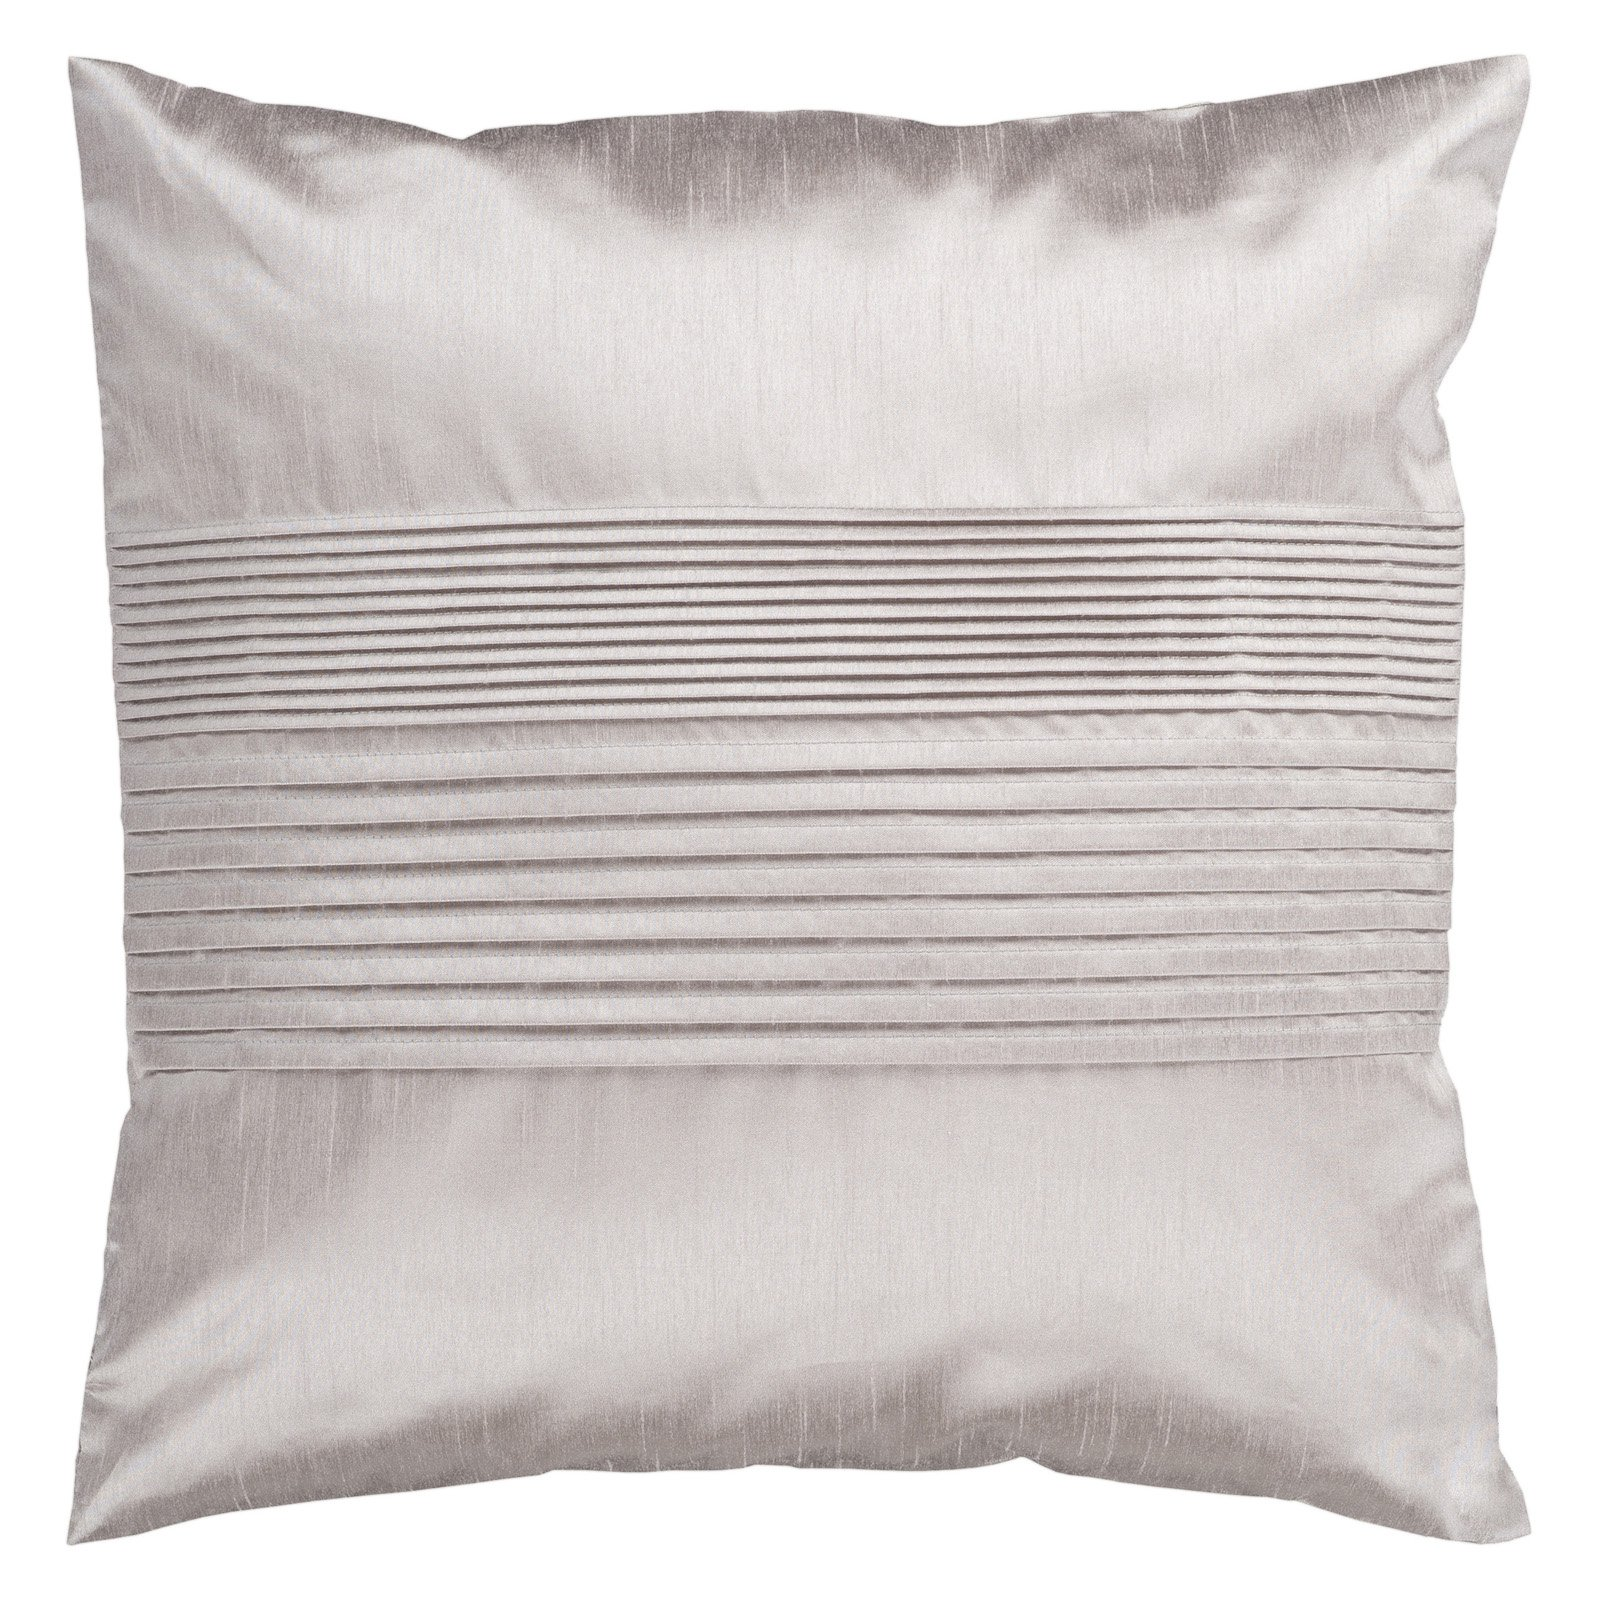 Silver Shiny Pillow with Striping HH015